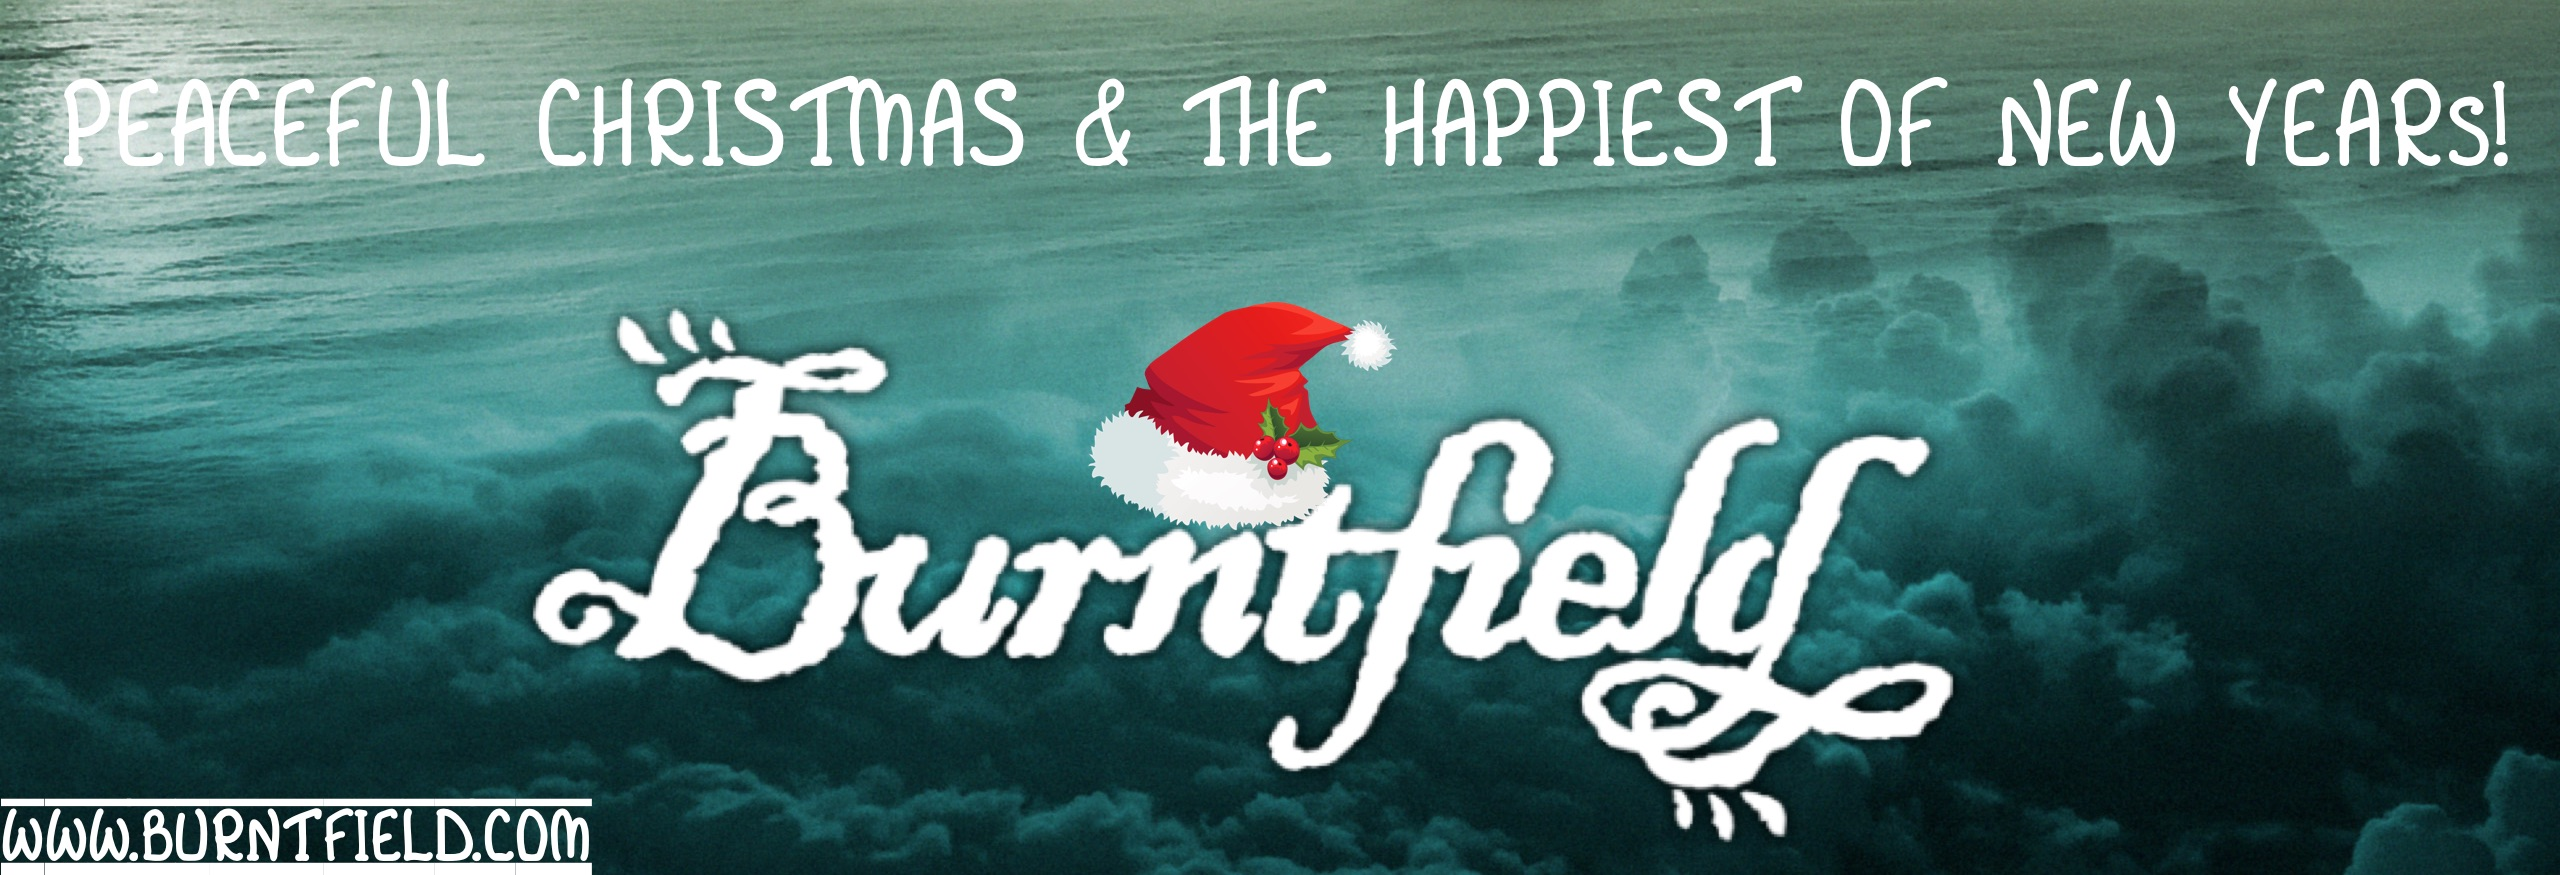 Burntfield_Xmas_2015